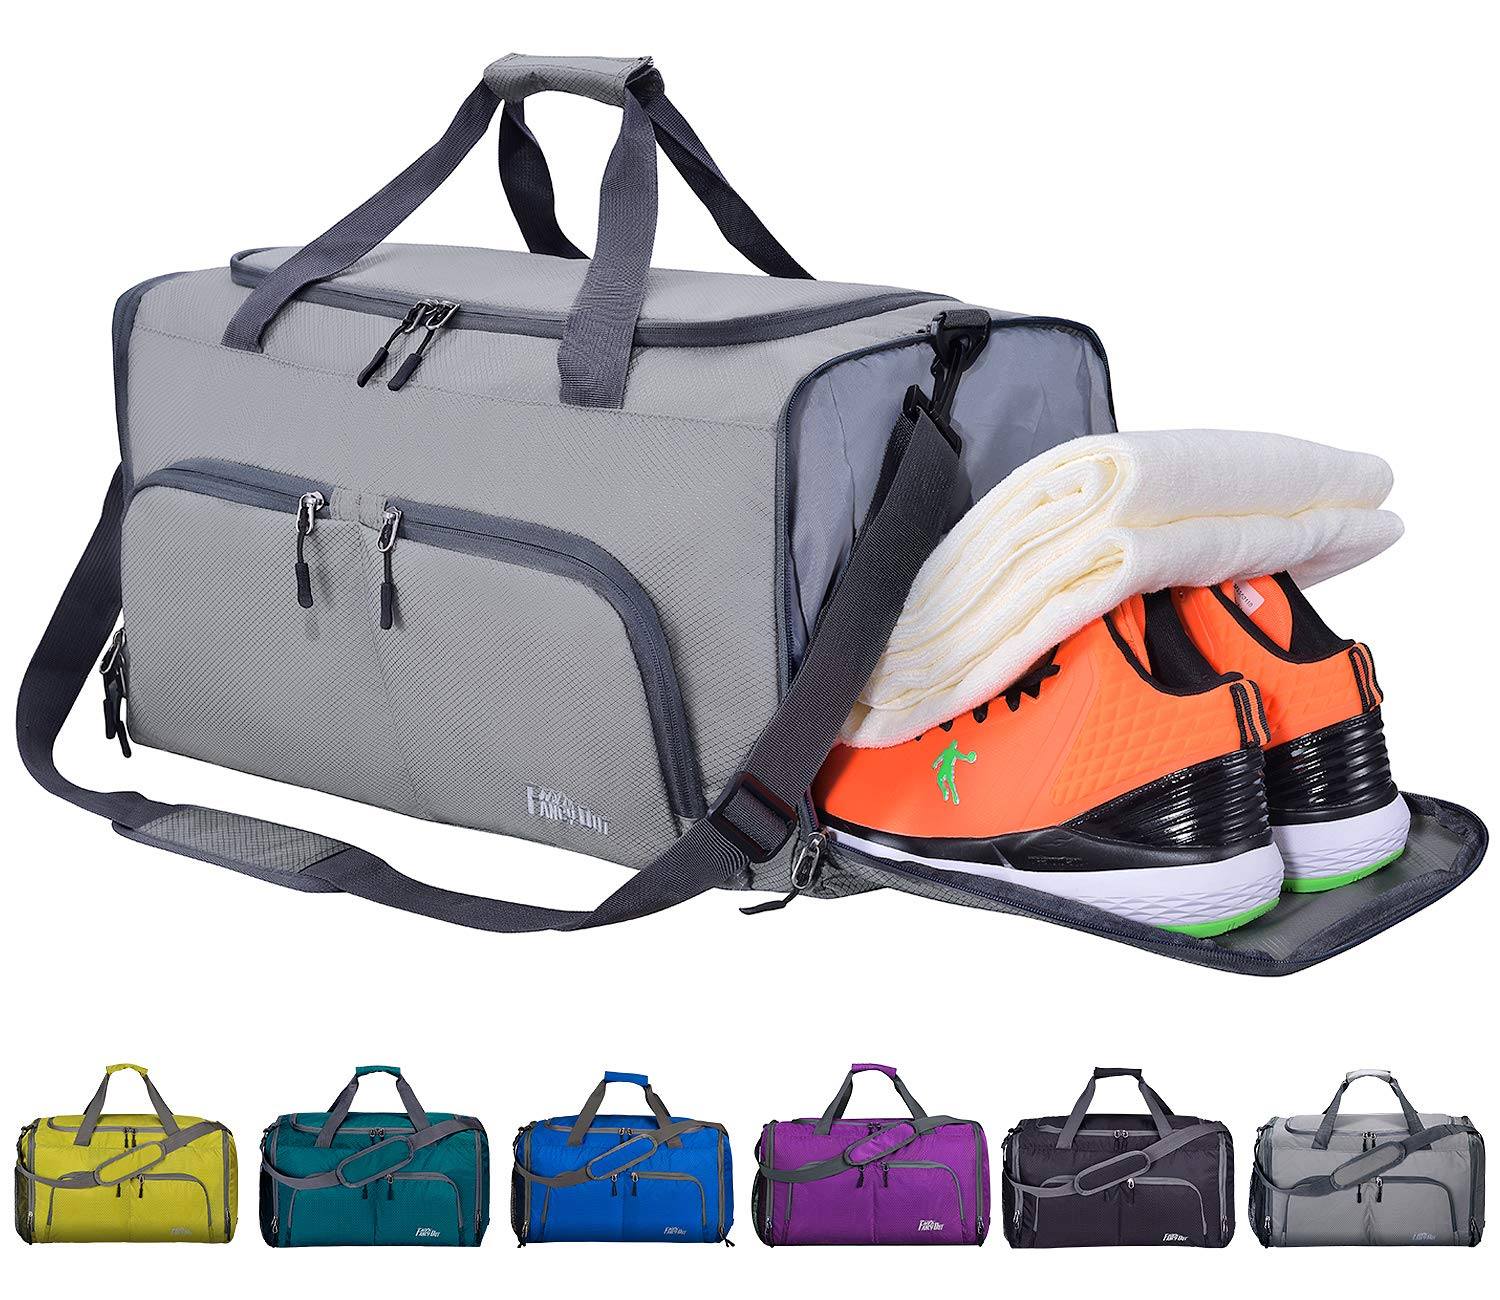 3767117ed03f FANCYOUT Foldable Sports Gym Bag with Shoes Compartment   Wet Pocket ...